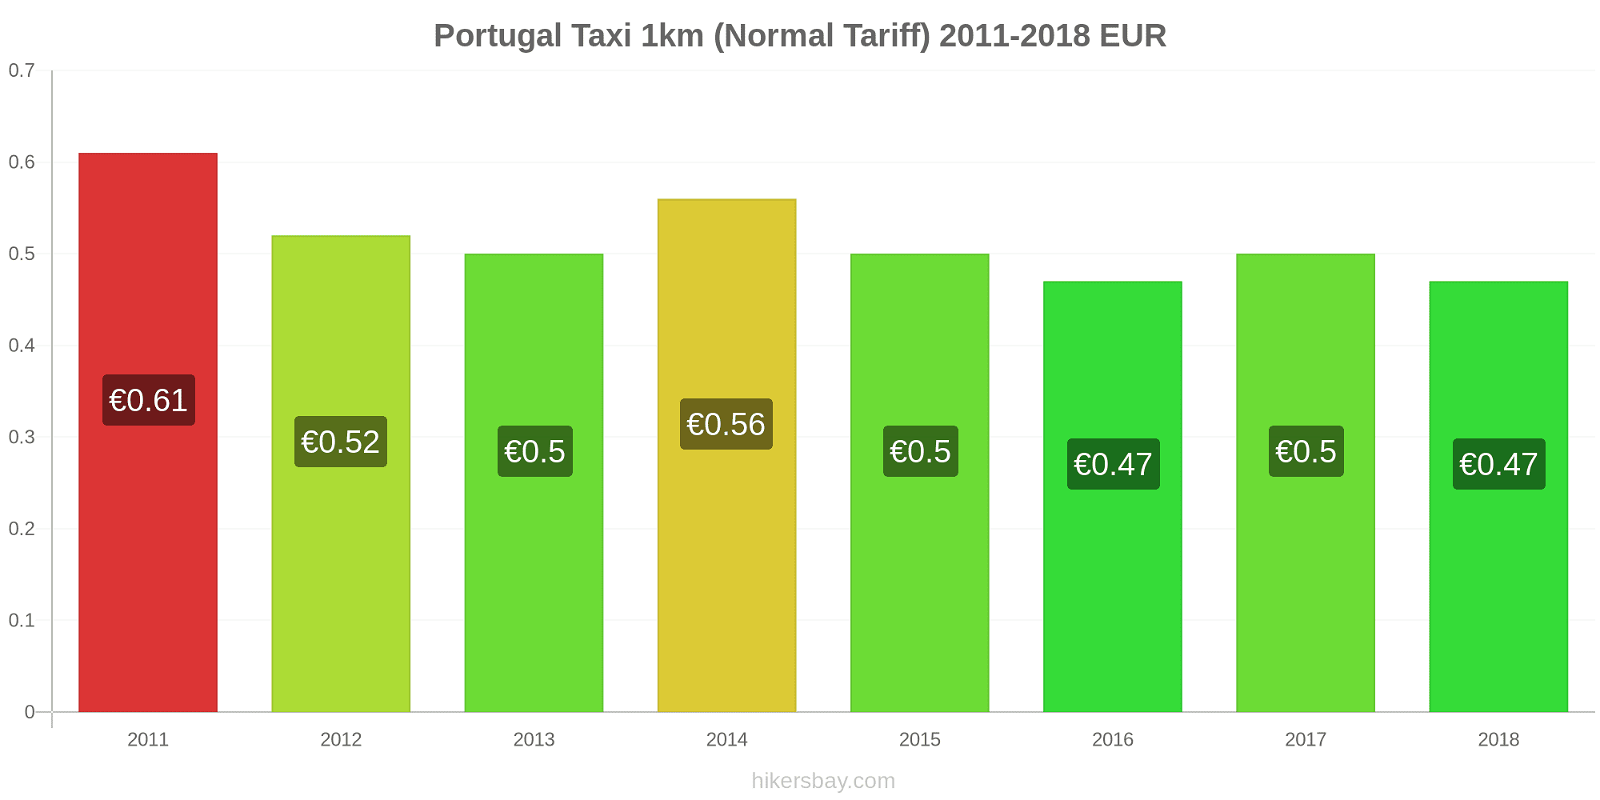 Portugal price changes Taxi 1km (Normal Tariff) hikersbay.com